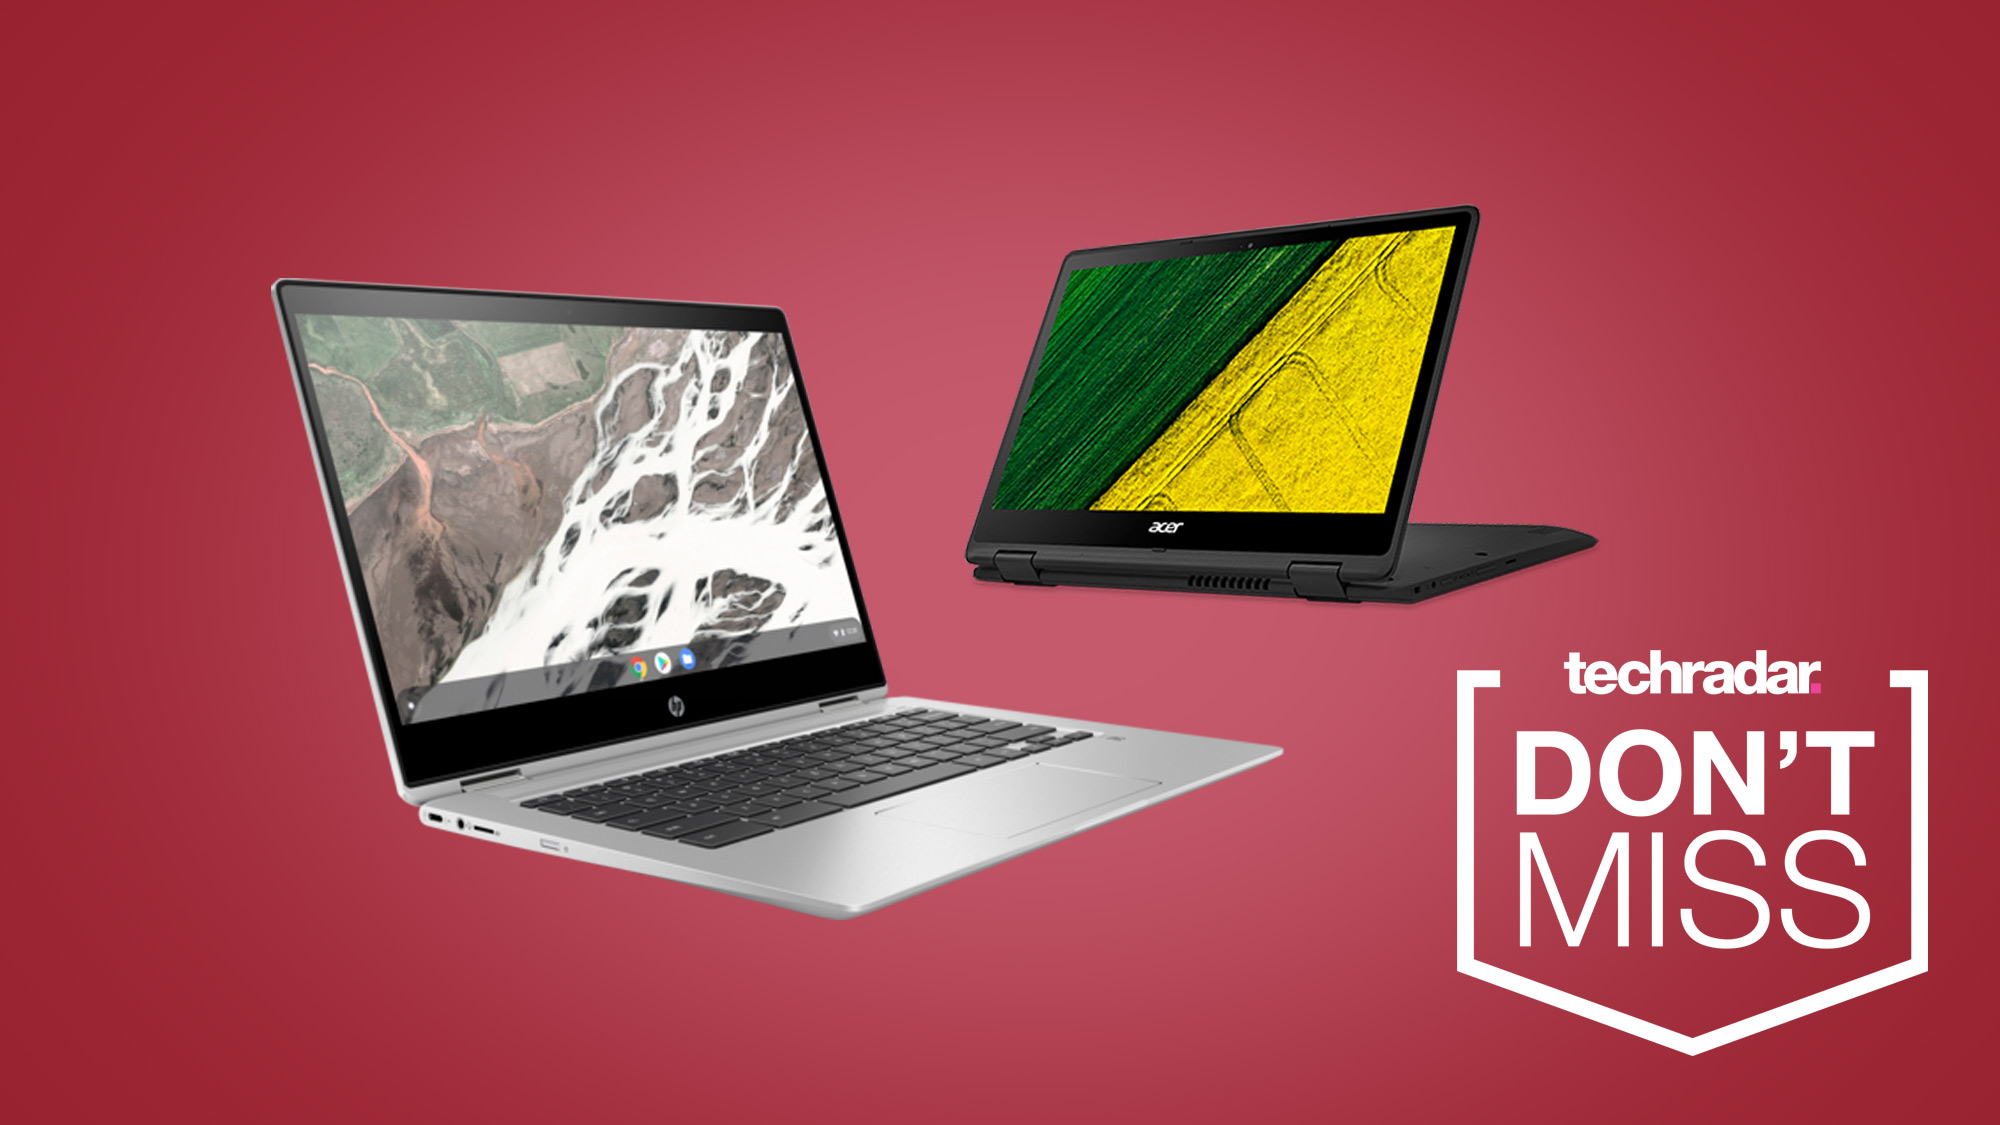 Best Buy's latest cheap laptop deals can save you up to $200: sale lines include Dell, HP, Lenovo, and Acer